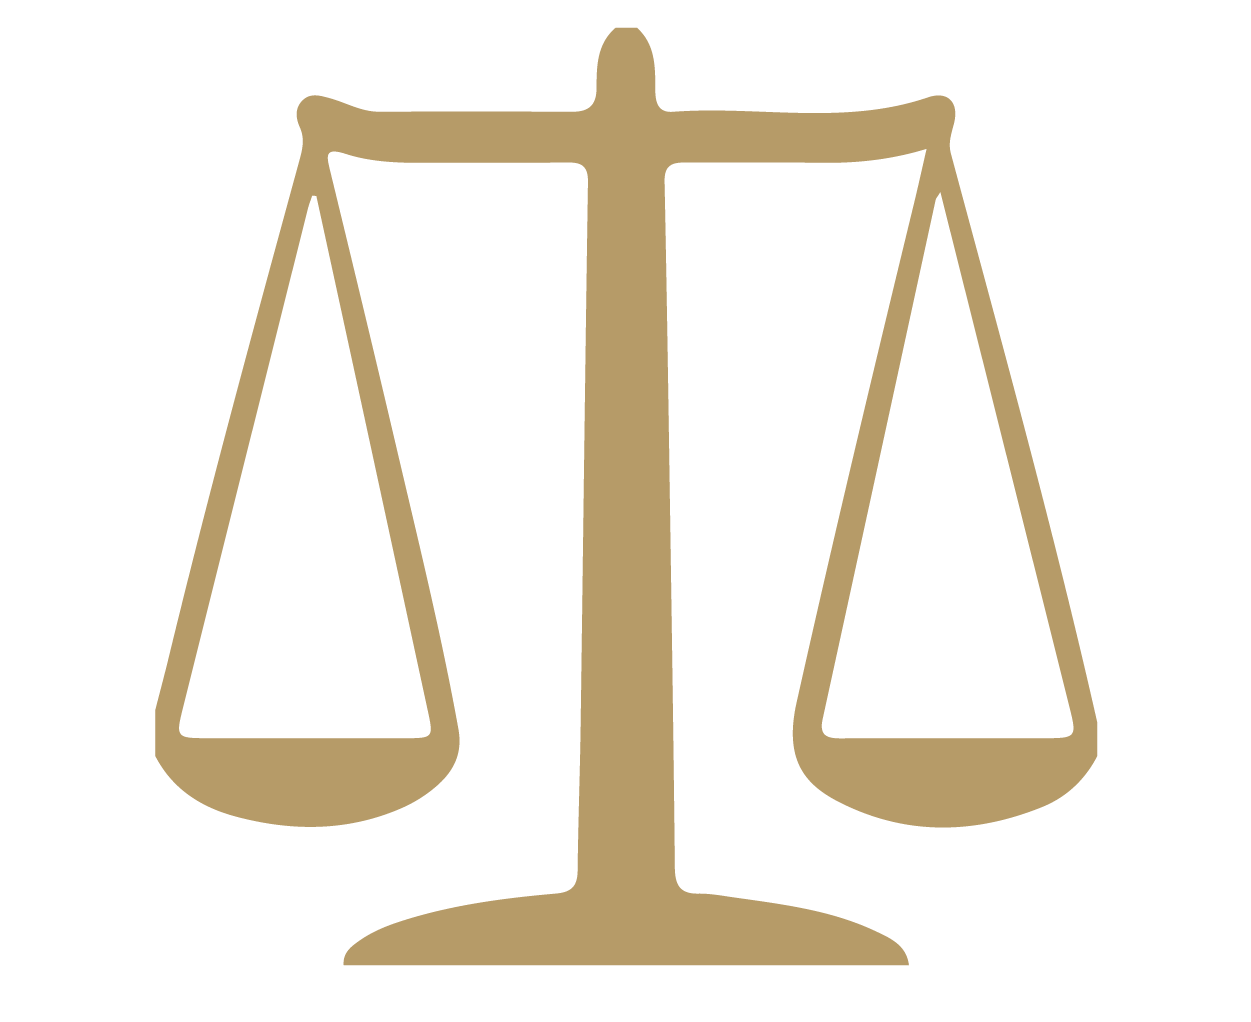 Law clipart criminal lawyer. Injuries defense civil rights